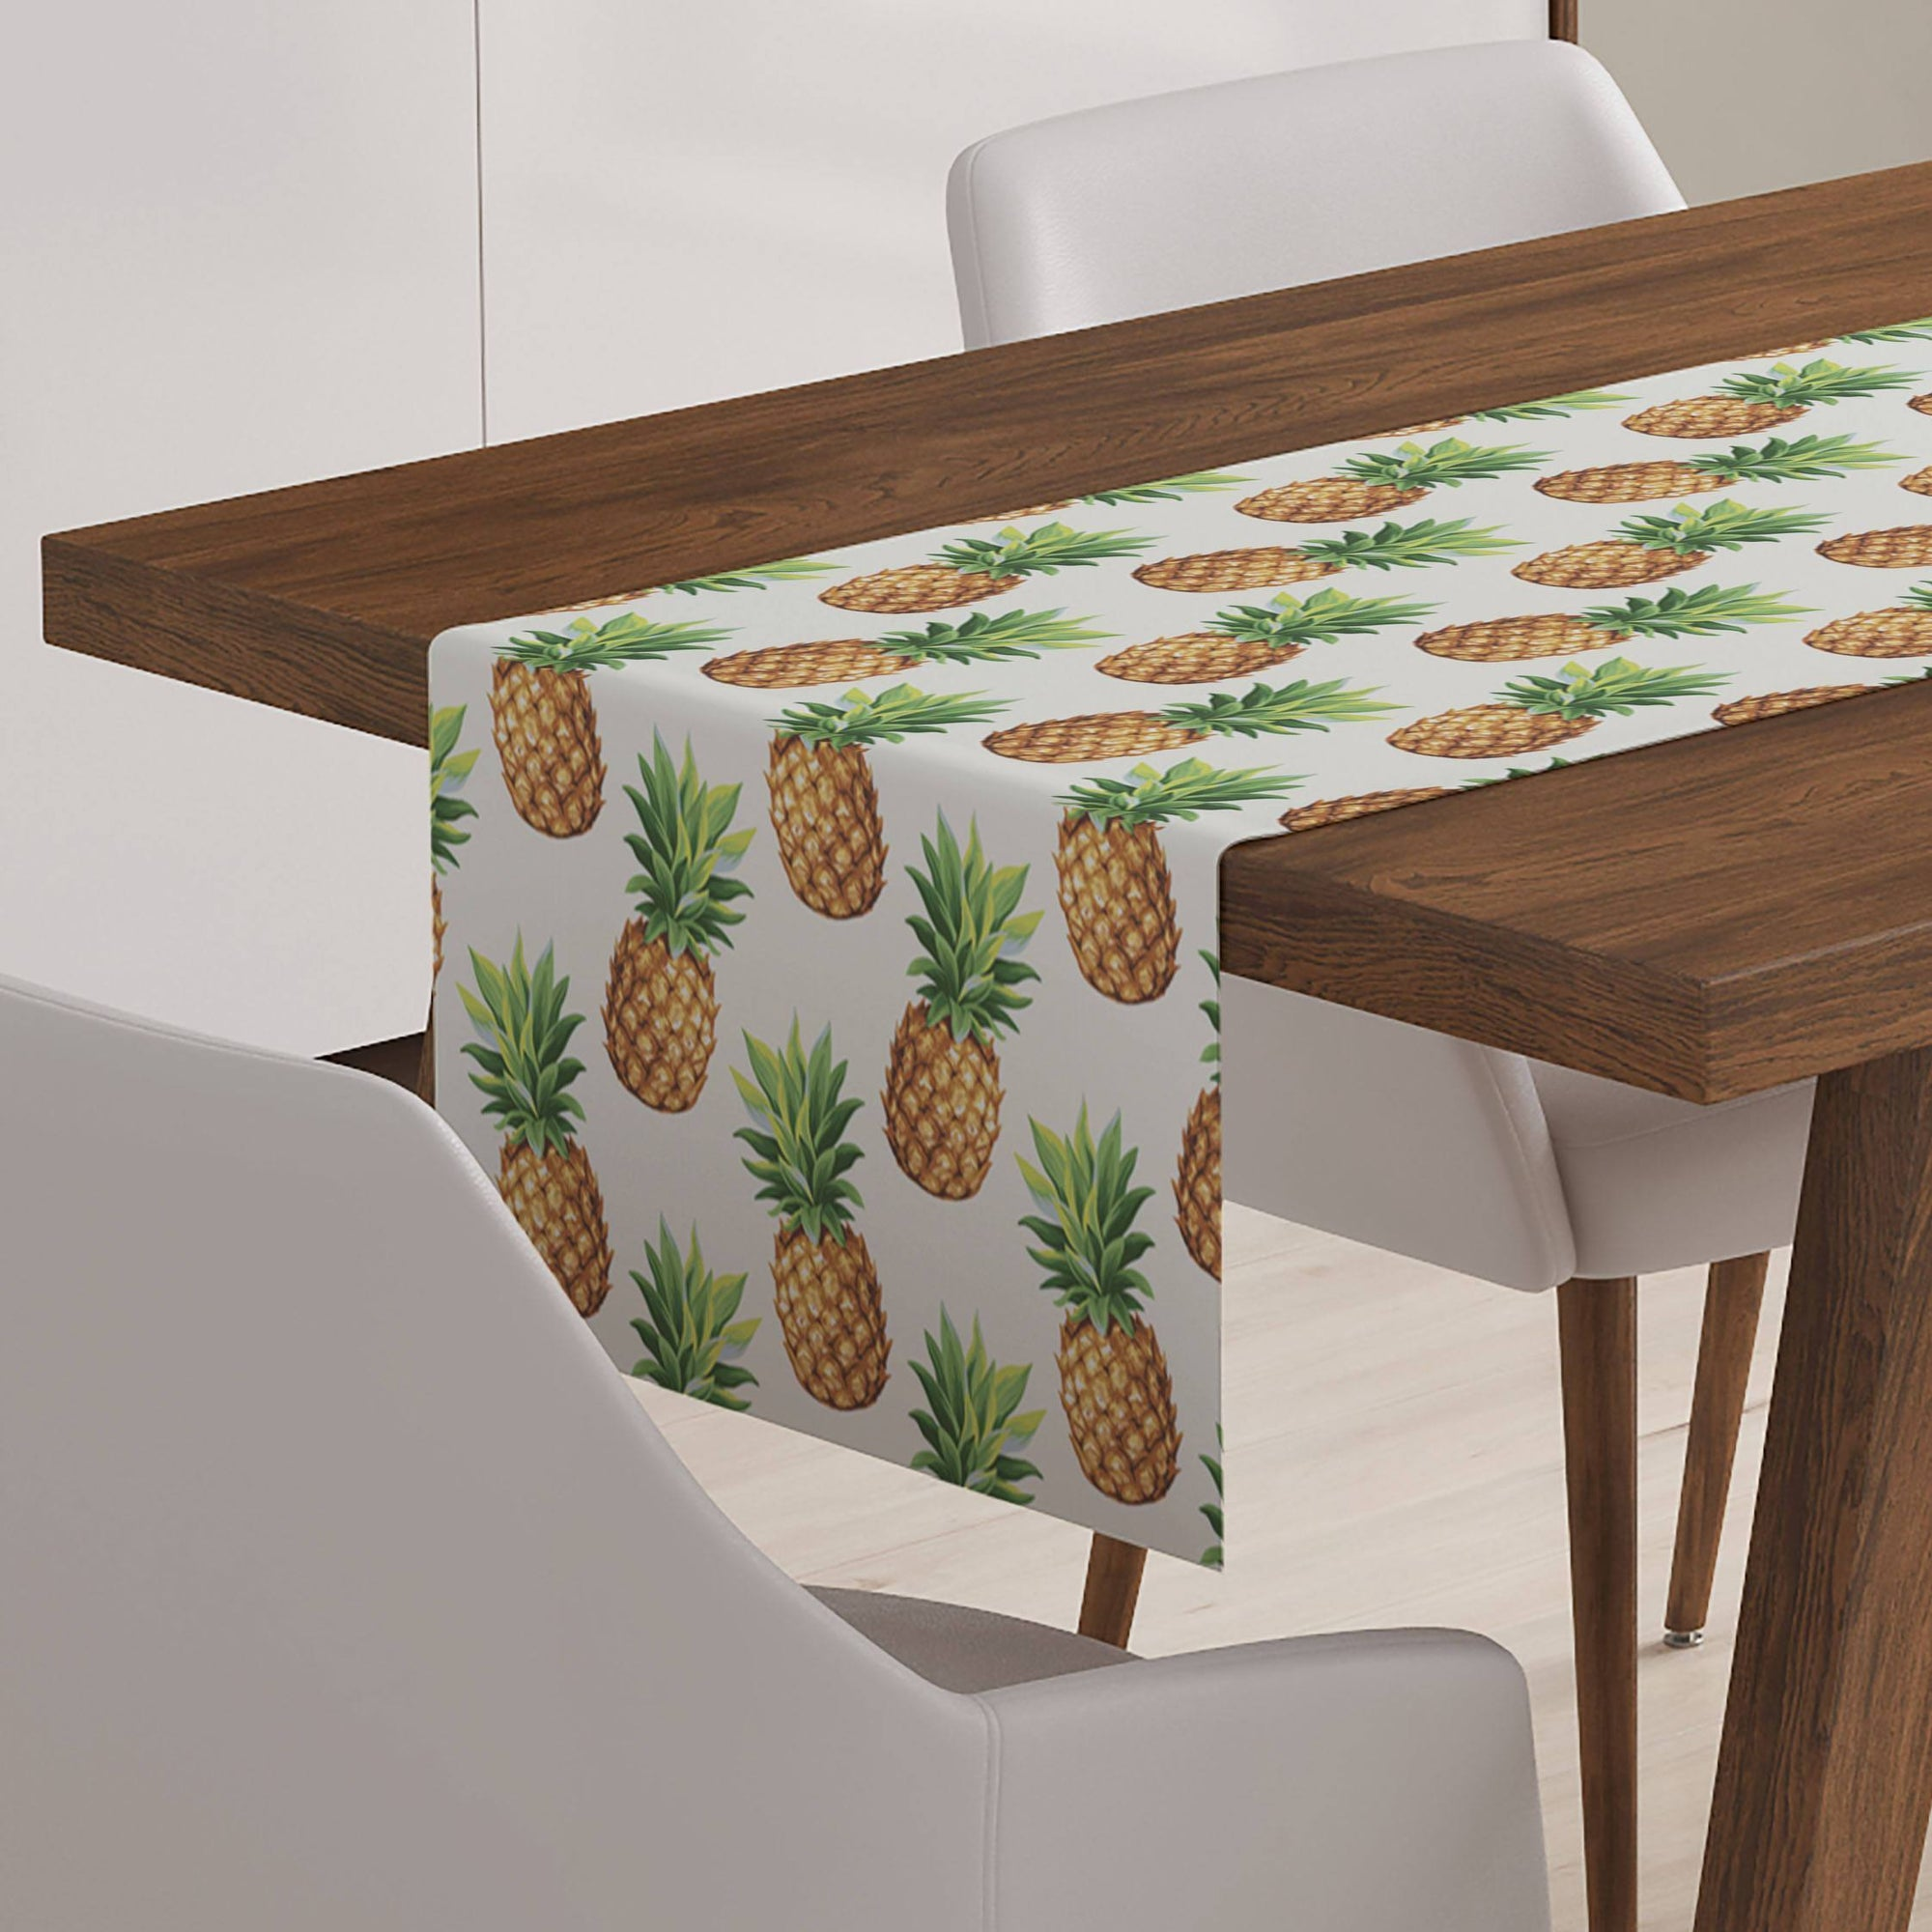 Colonial Pineapple Table Runner - Table Runners - W.FRANCIS